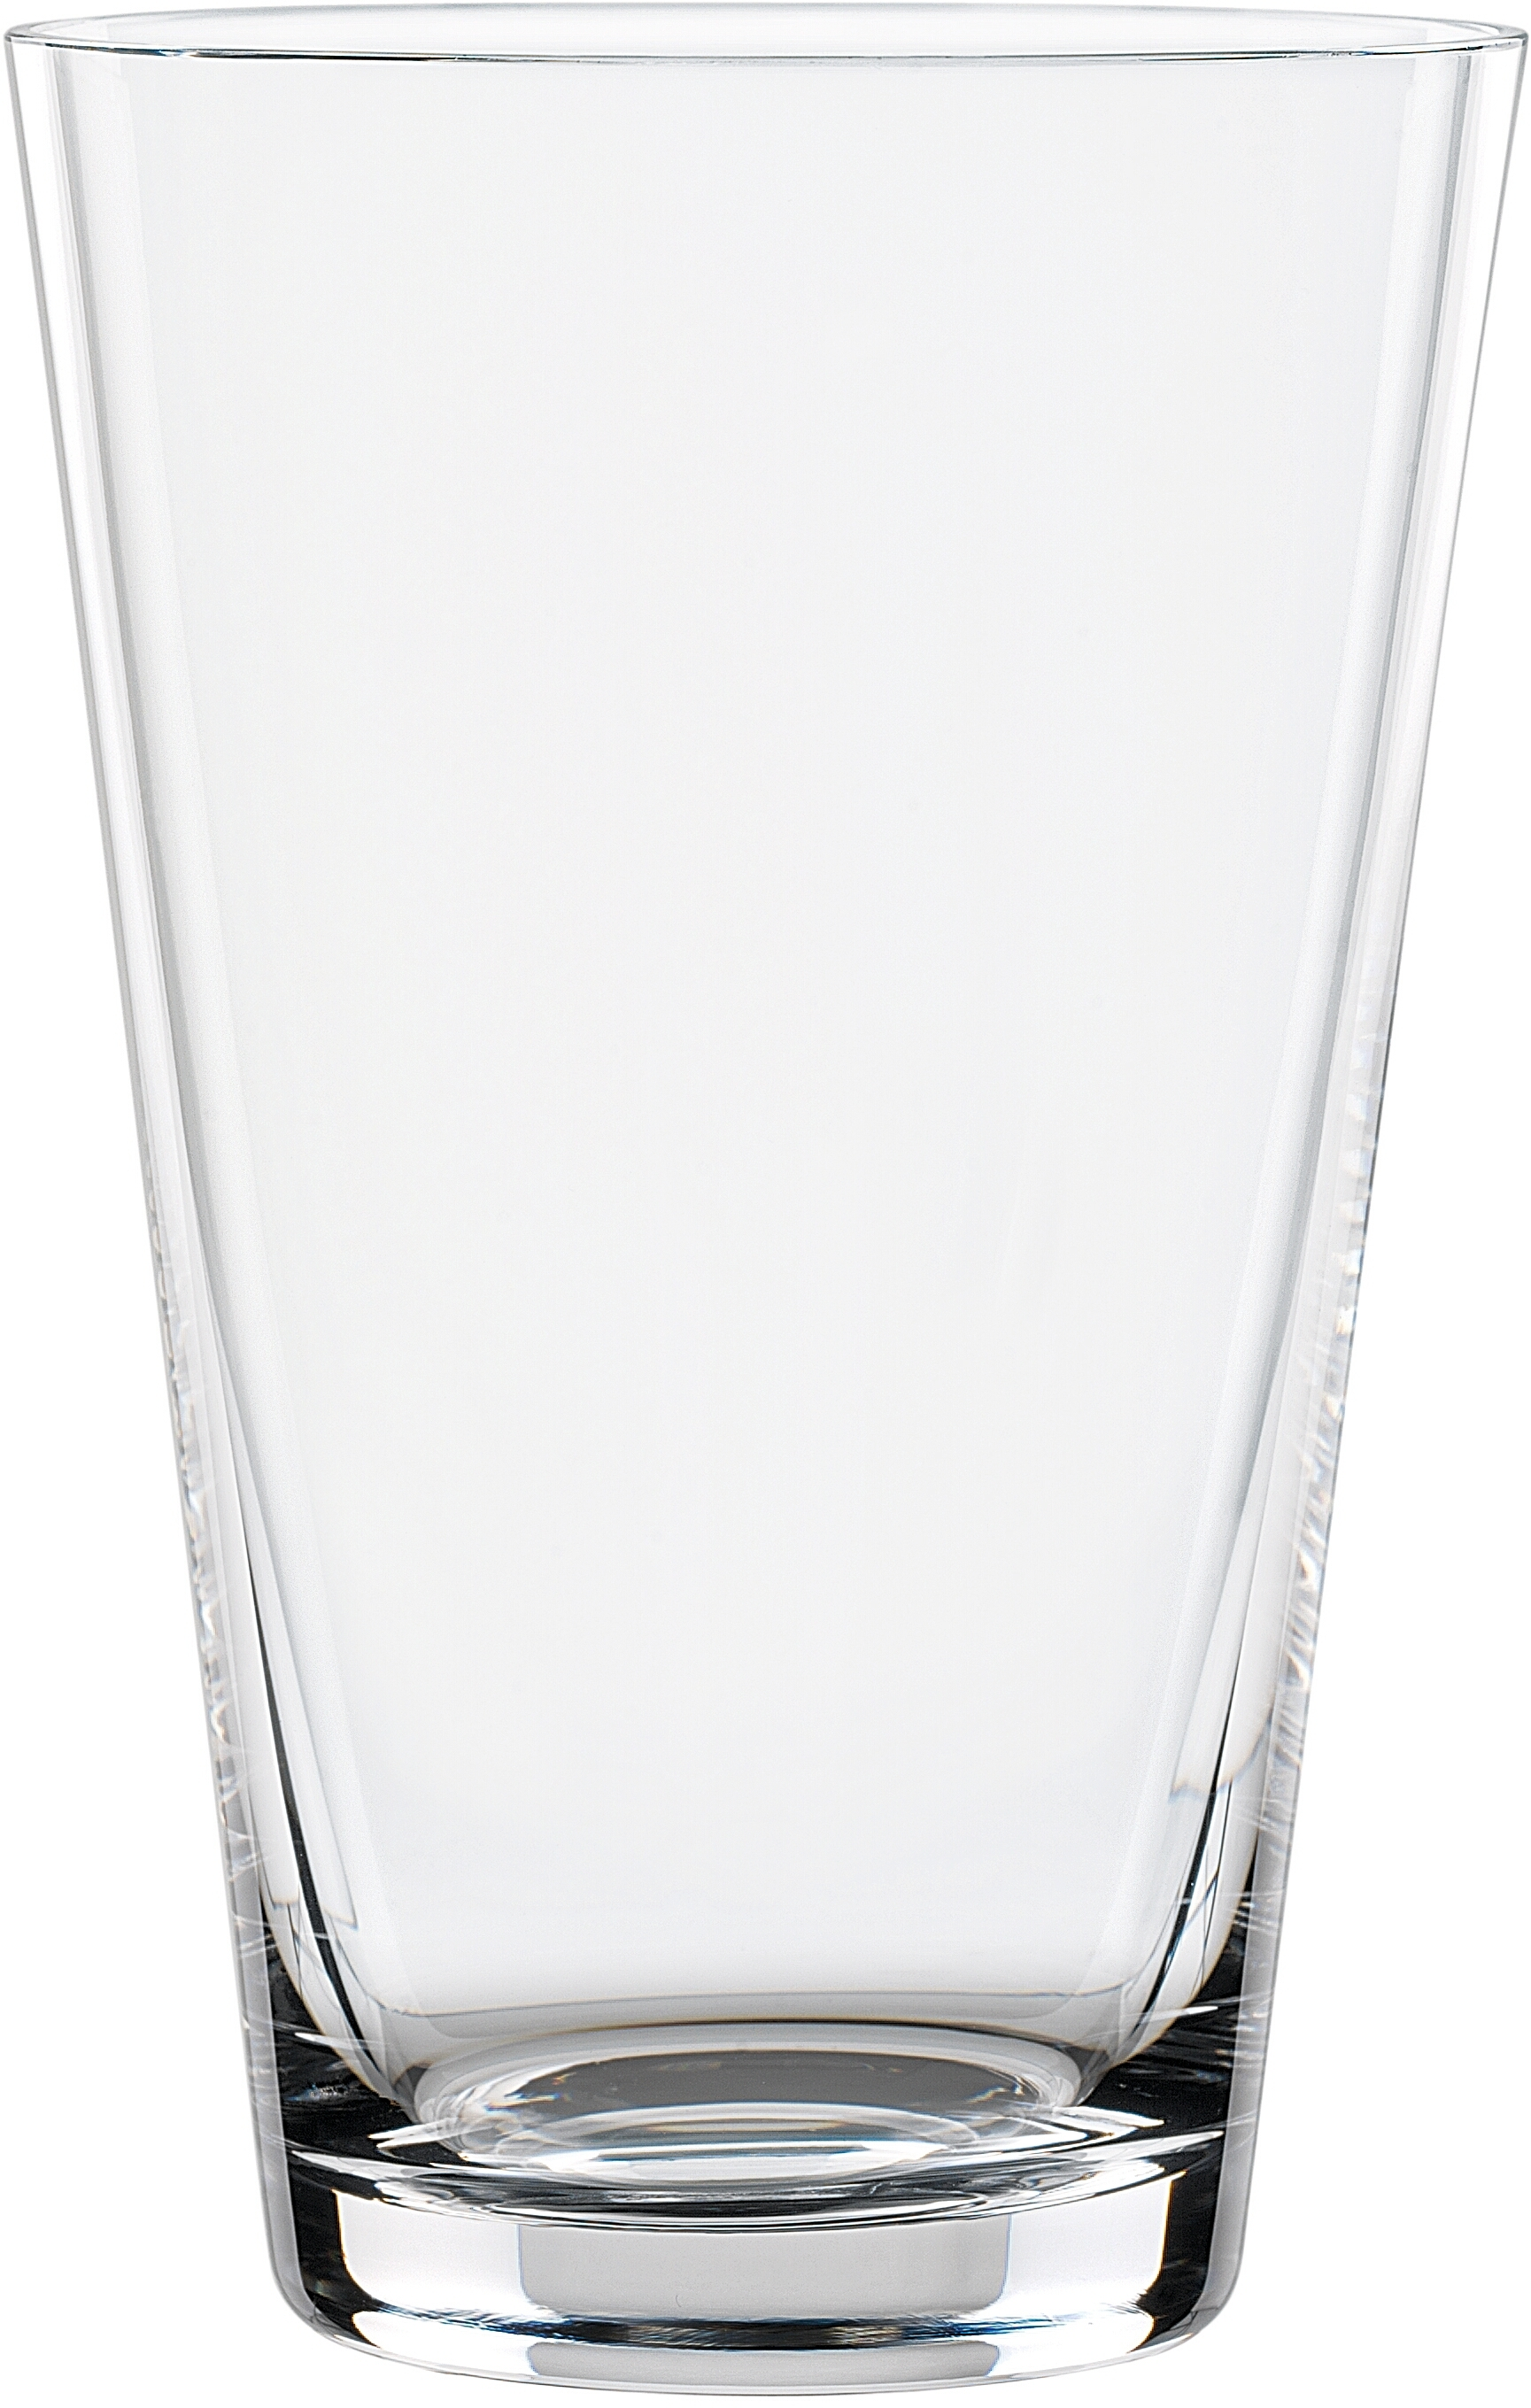 Spiegelau Lounge Crystal Longdrink Bar Glass, Set of 2